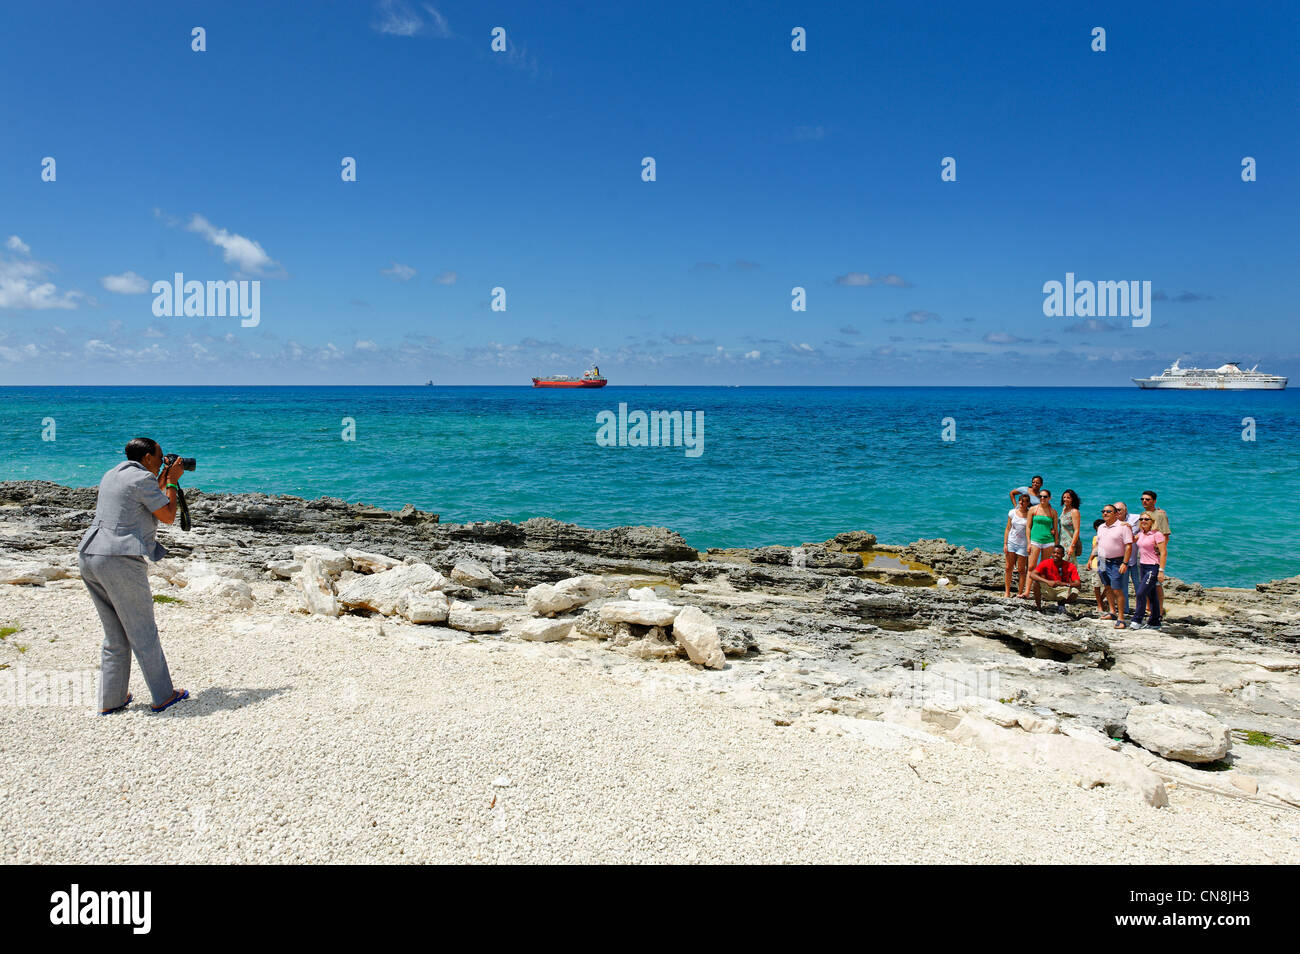 Bahamas, Grand Bahama Island, Eight Mile Rock, tourists taking a picture in front of the ships entering the port - Stock Image